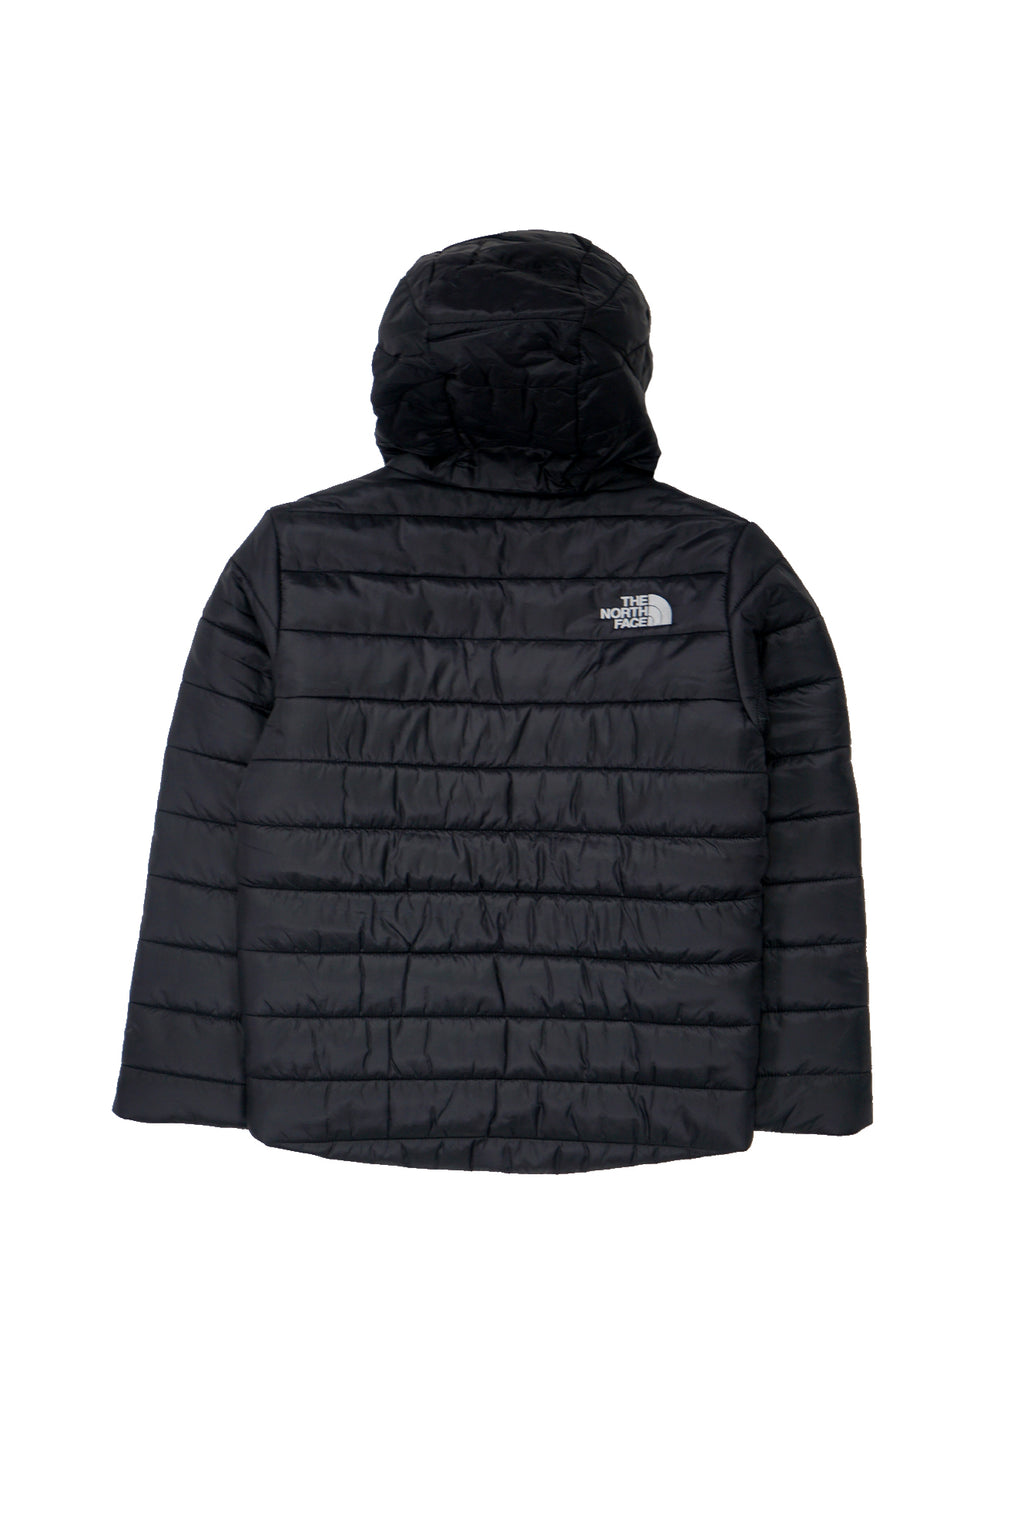 THE NORTH FACE YOUTH BOYS REV PERRITO JACKET